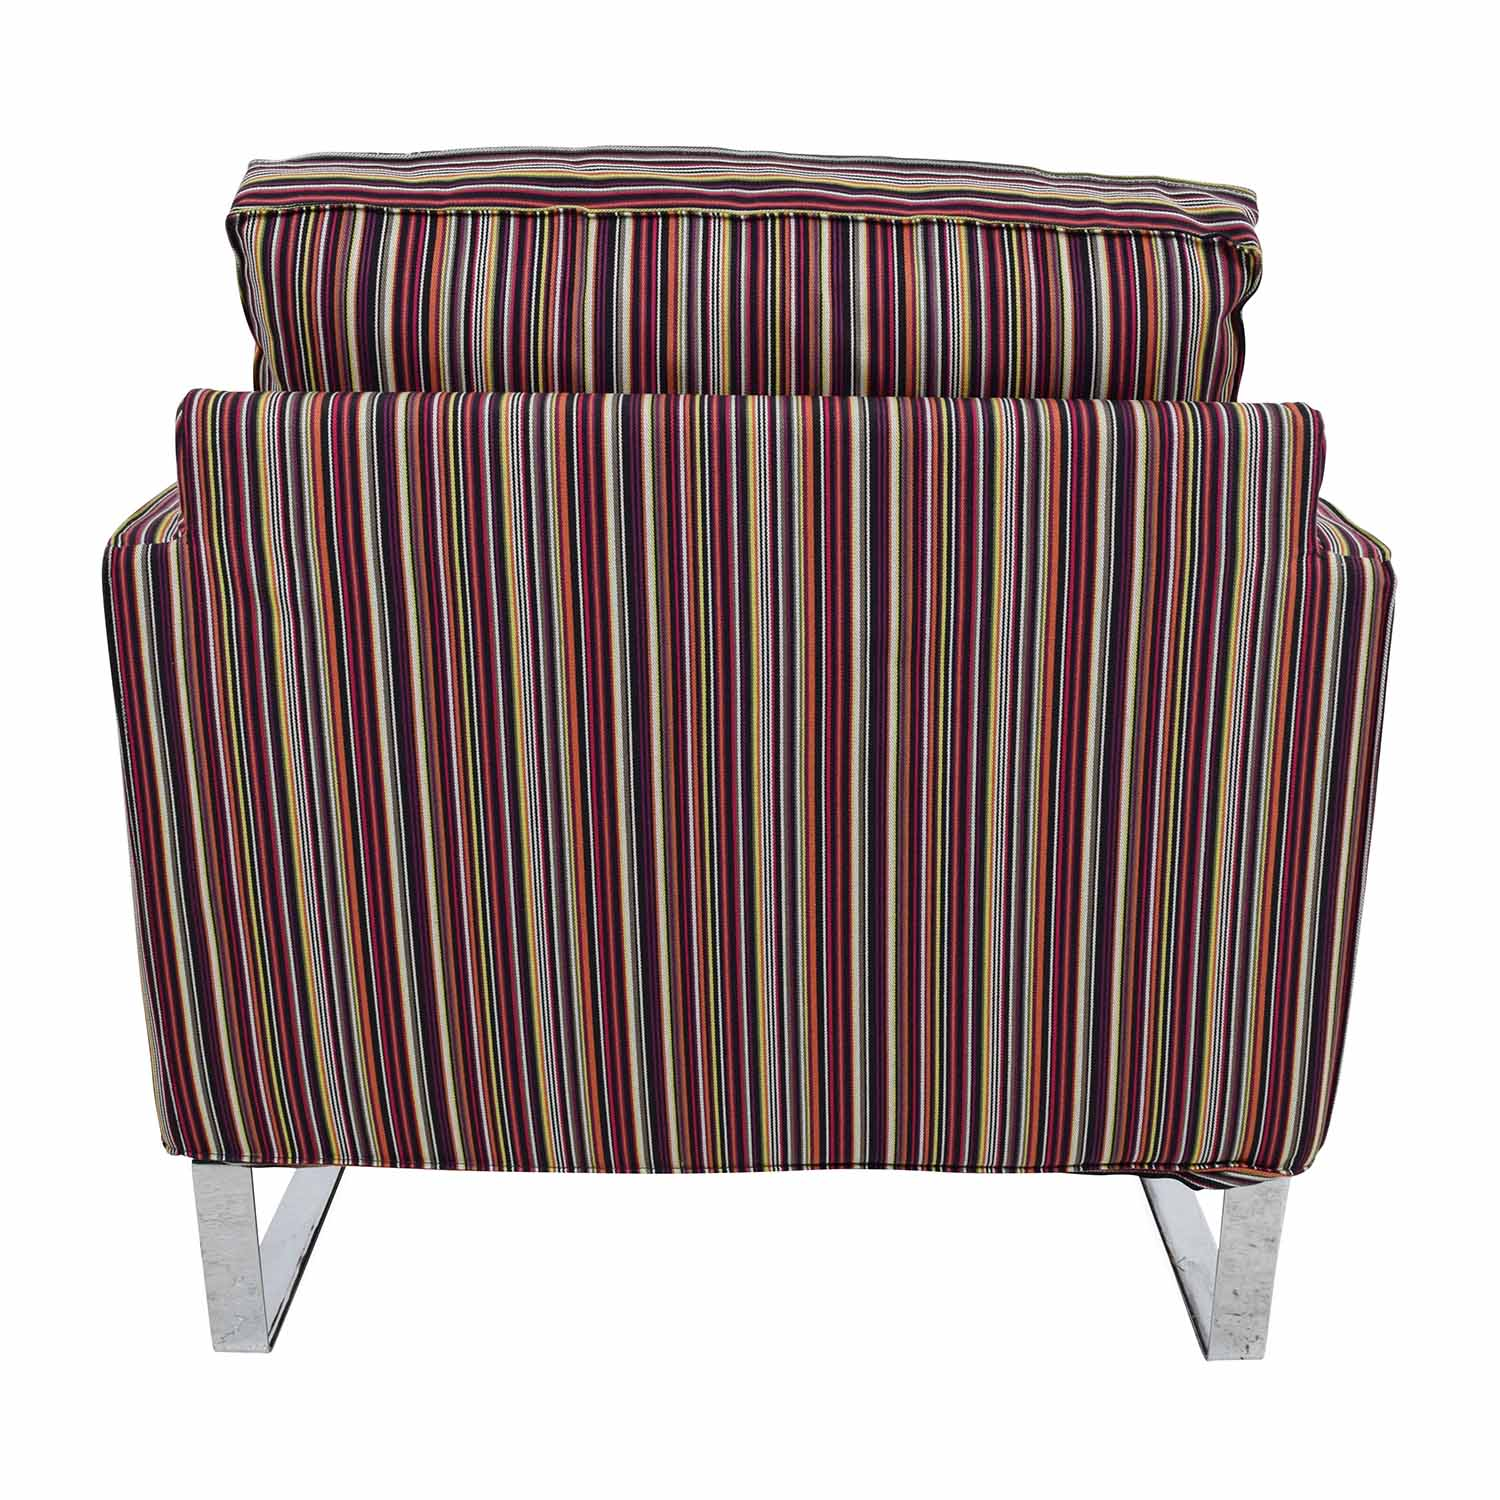 Chaises Design Discount 77% Off - Ikea Ikea Rainbow Chair / Chairs